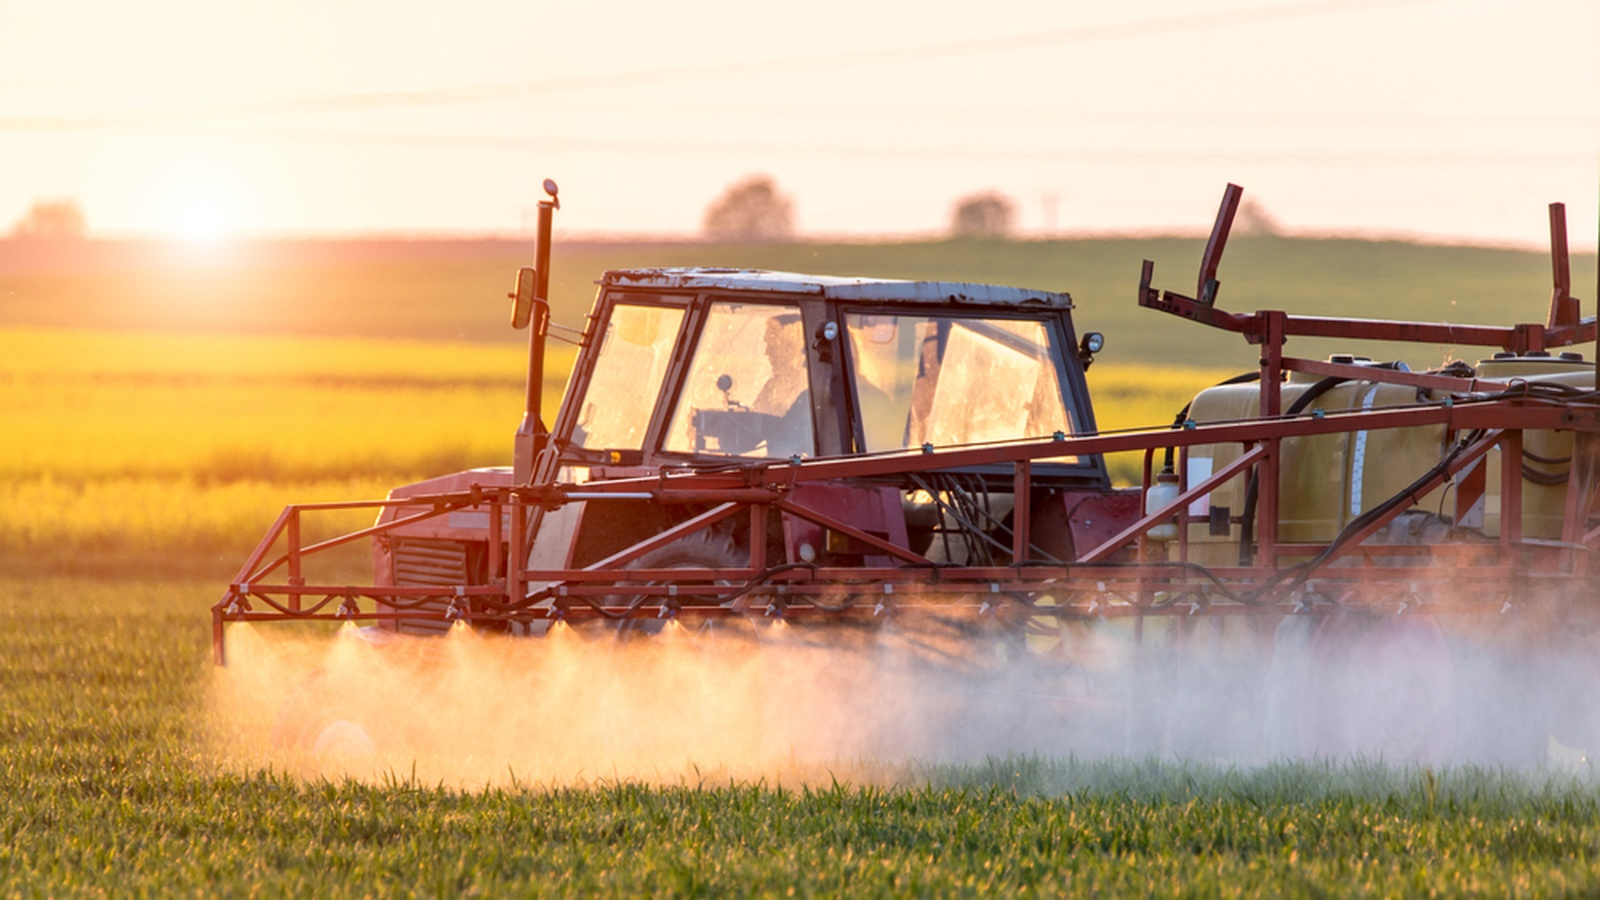 What Is 'Roundup' Doing To Your Body?